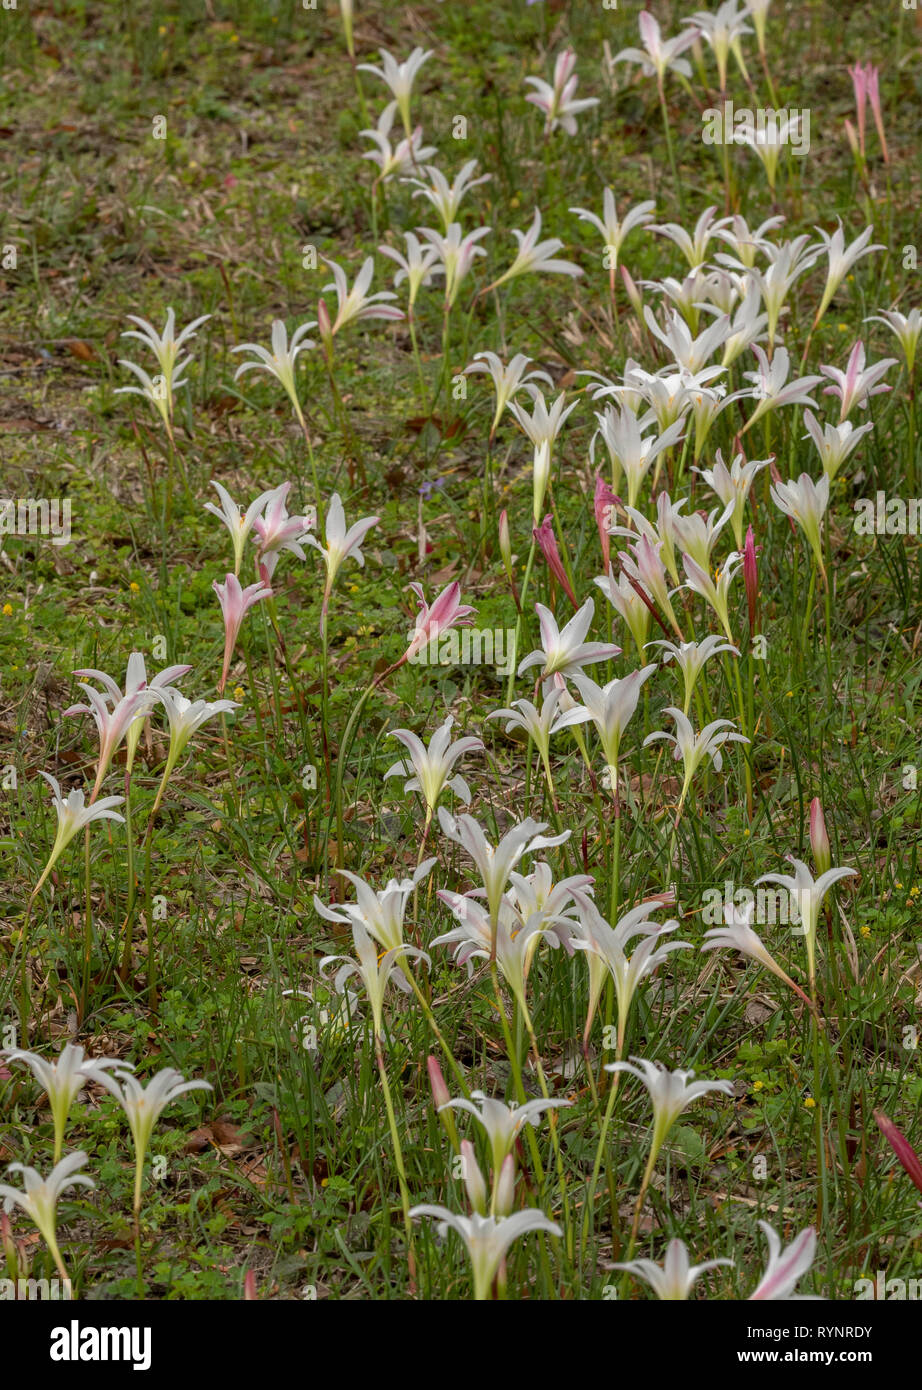 Atamasco-lily, Zephyranthes atamasca in flower in damp grassland; spring, north Florida. Stock Photo